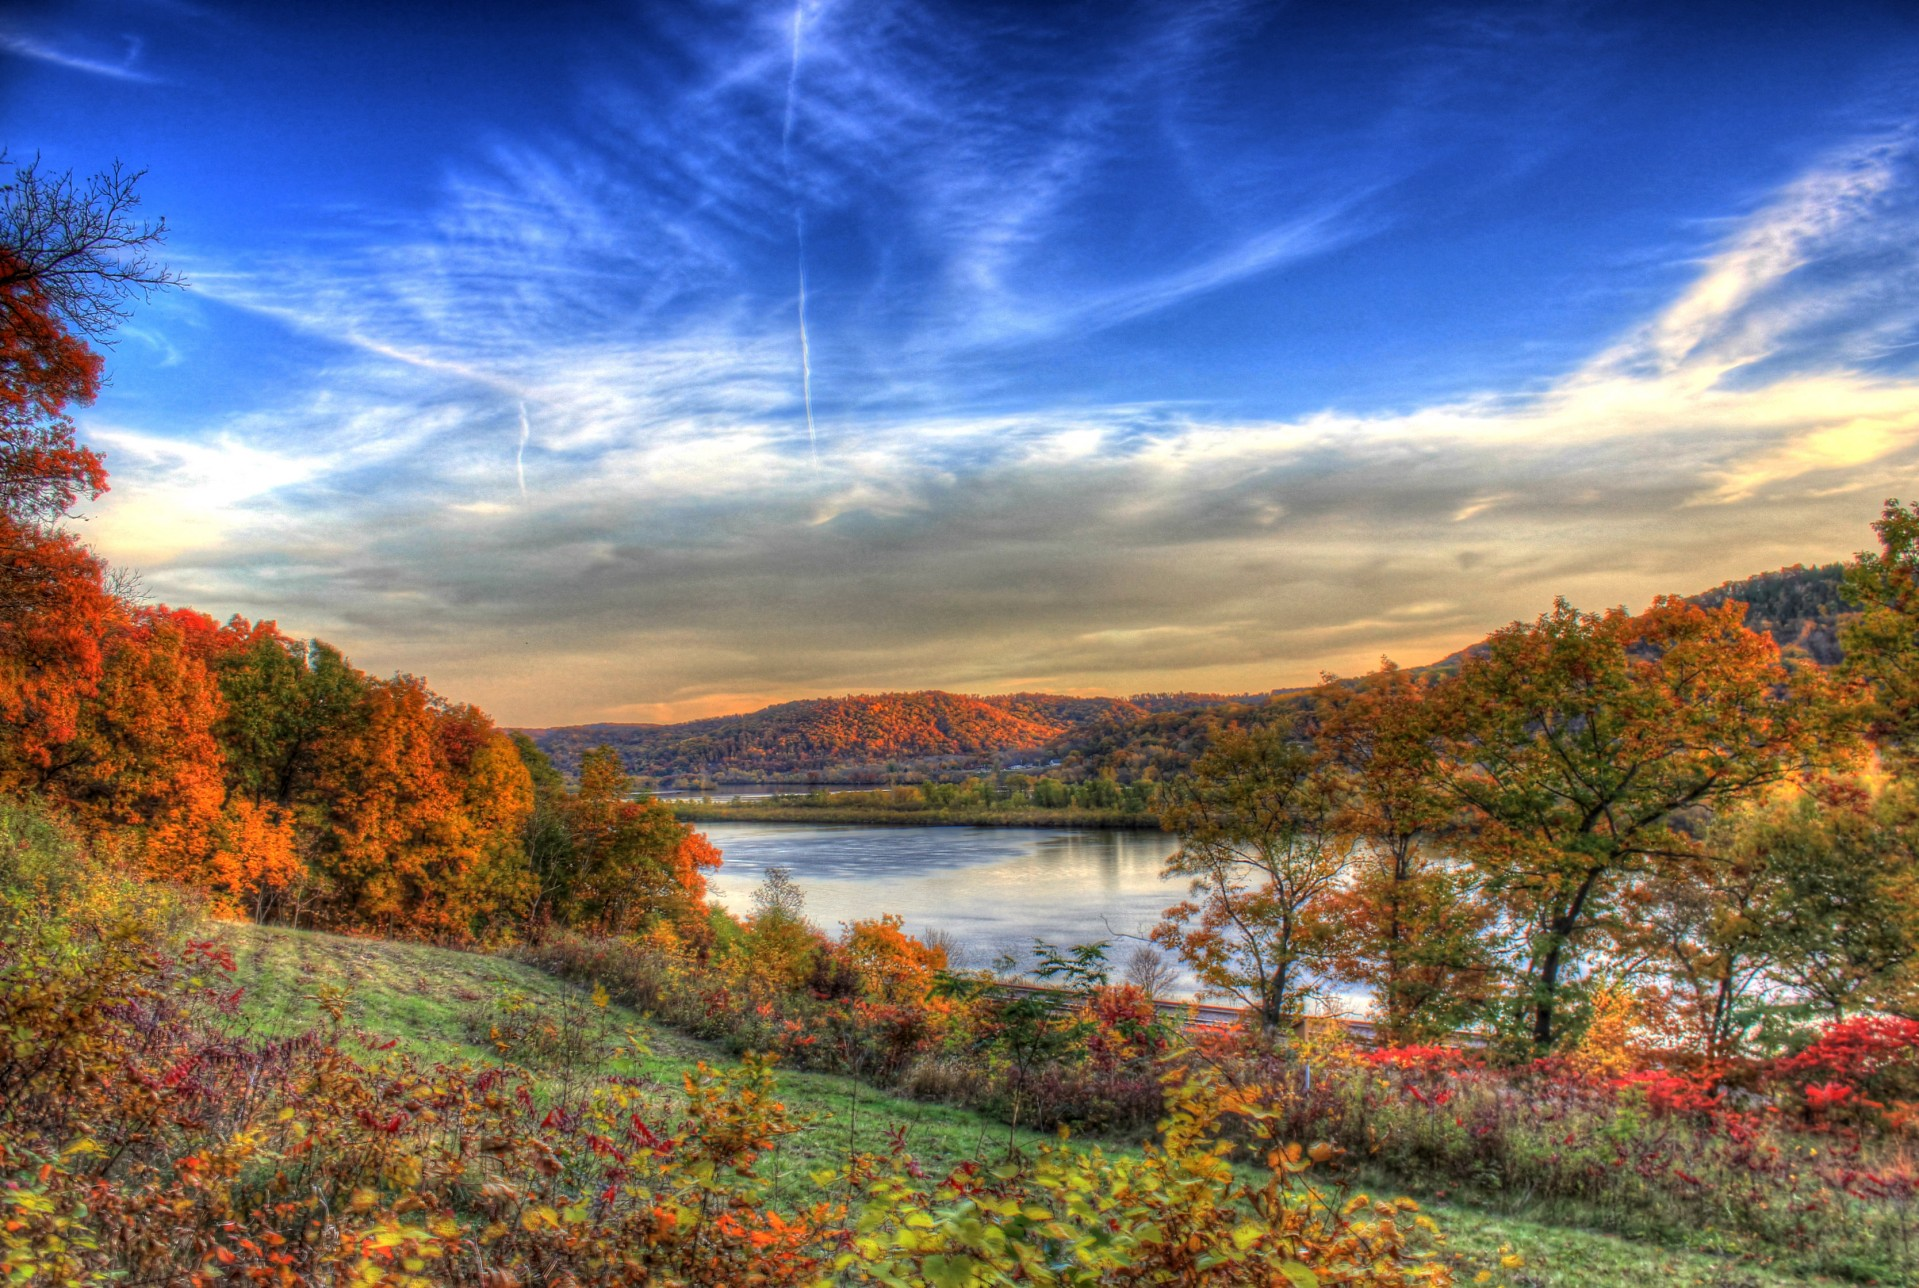 3d River Wallpaper Beautiful Autumn River Valley Free Stock Photo Public